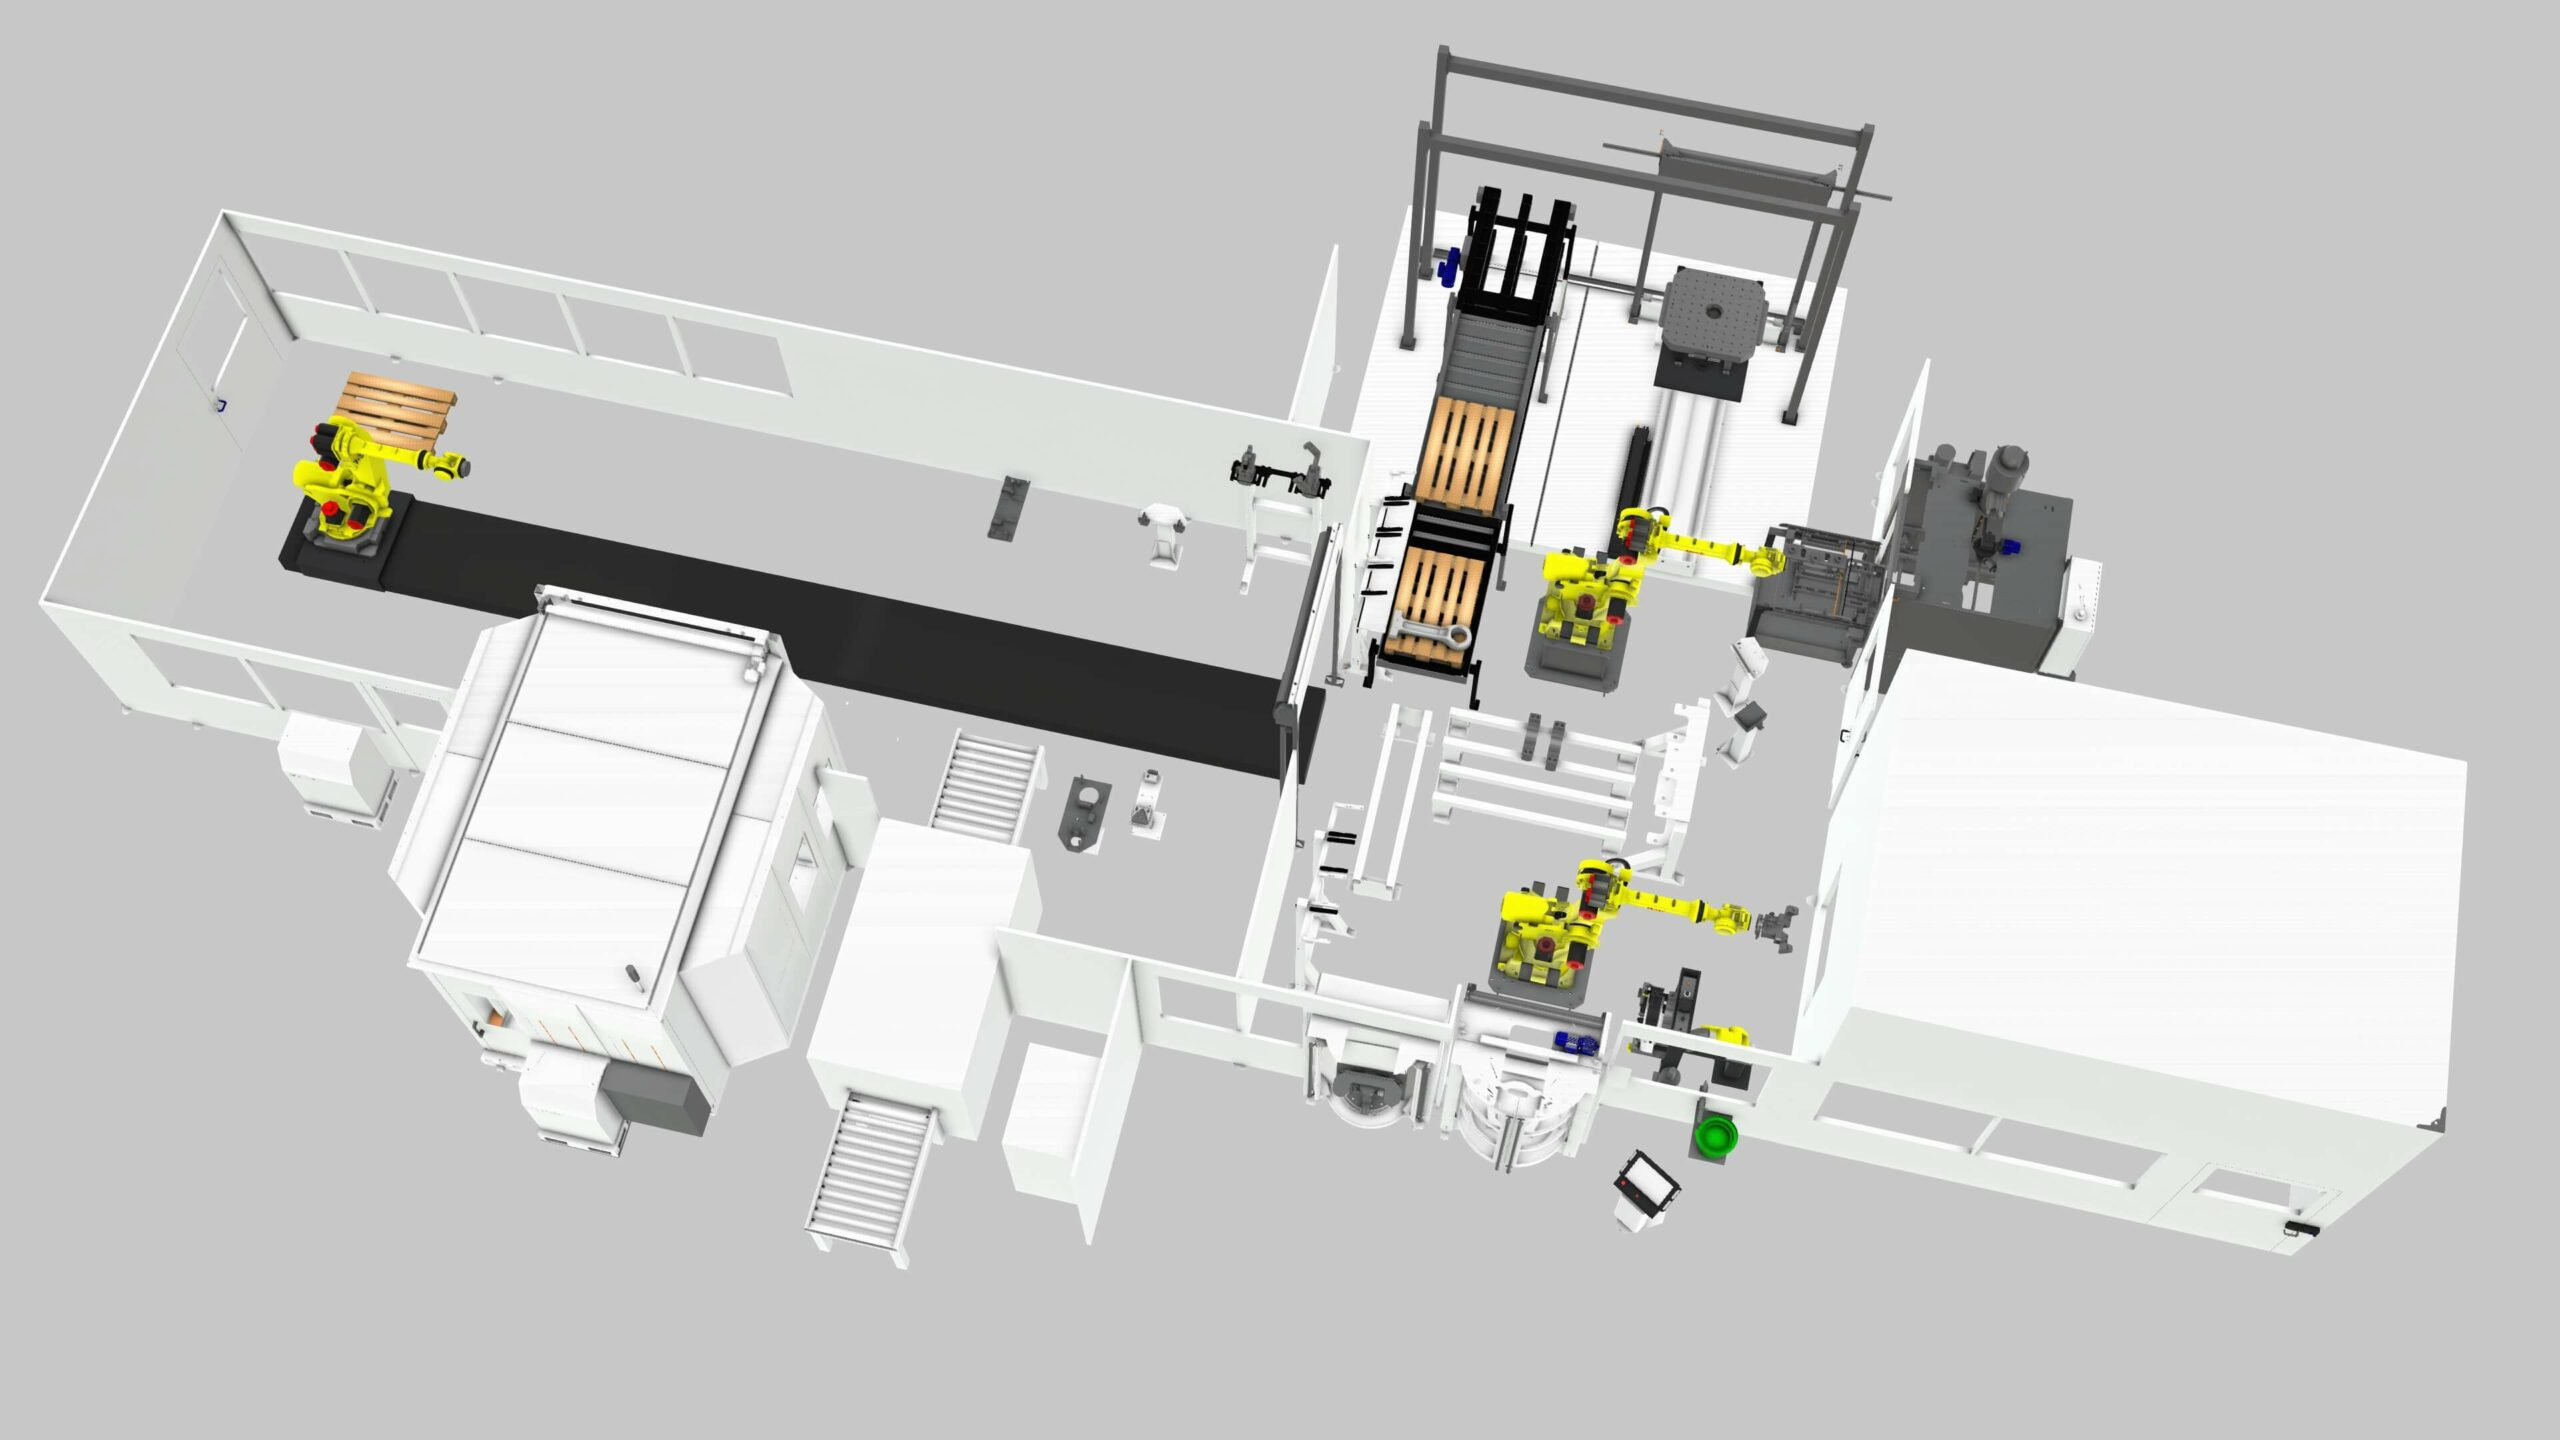 a rendering of a manufacturing line